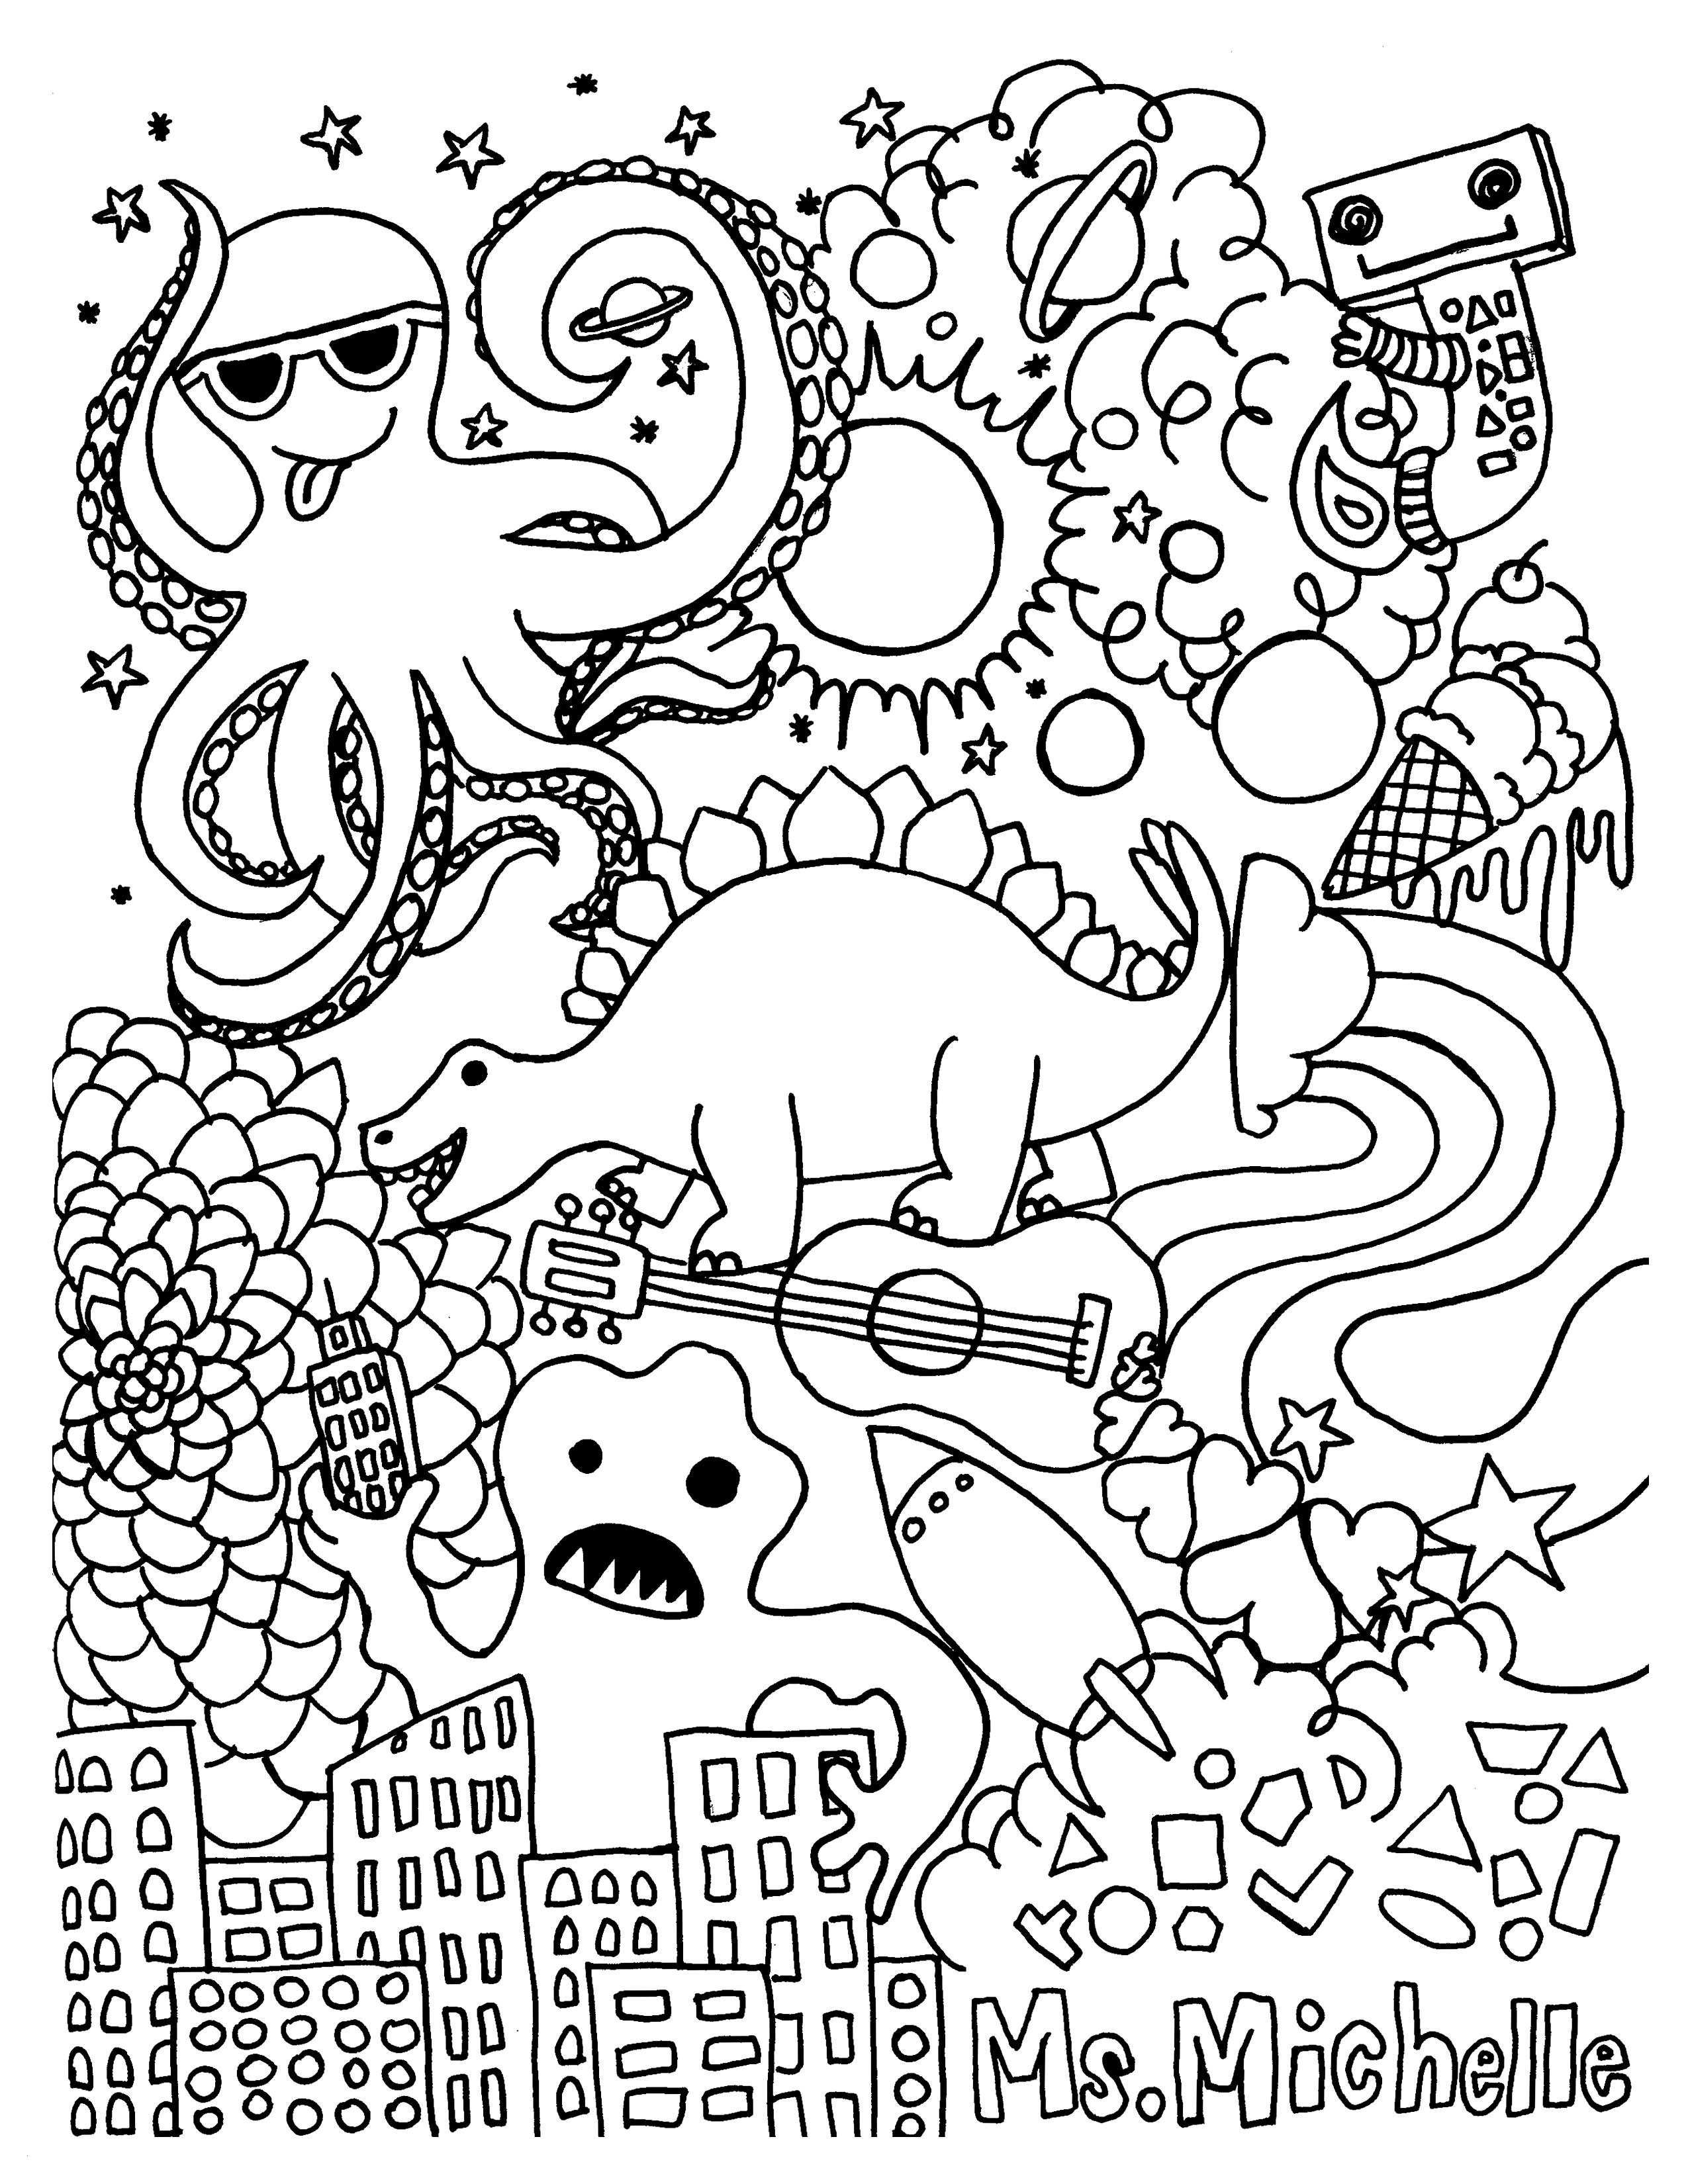 25 Crayon Coloring Pages Collection - Coloring Sheets